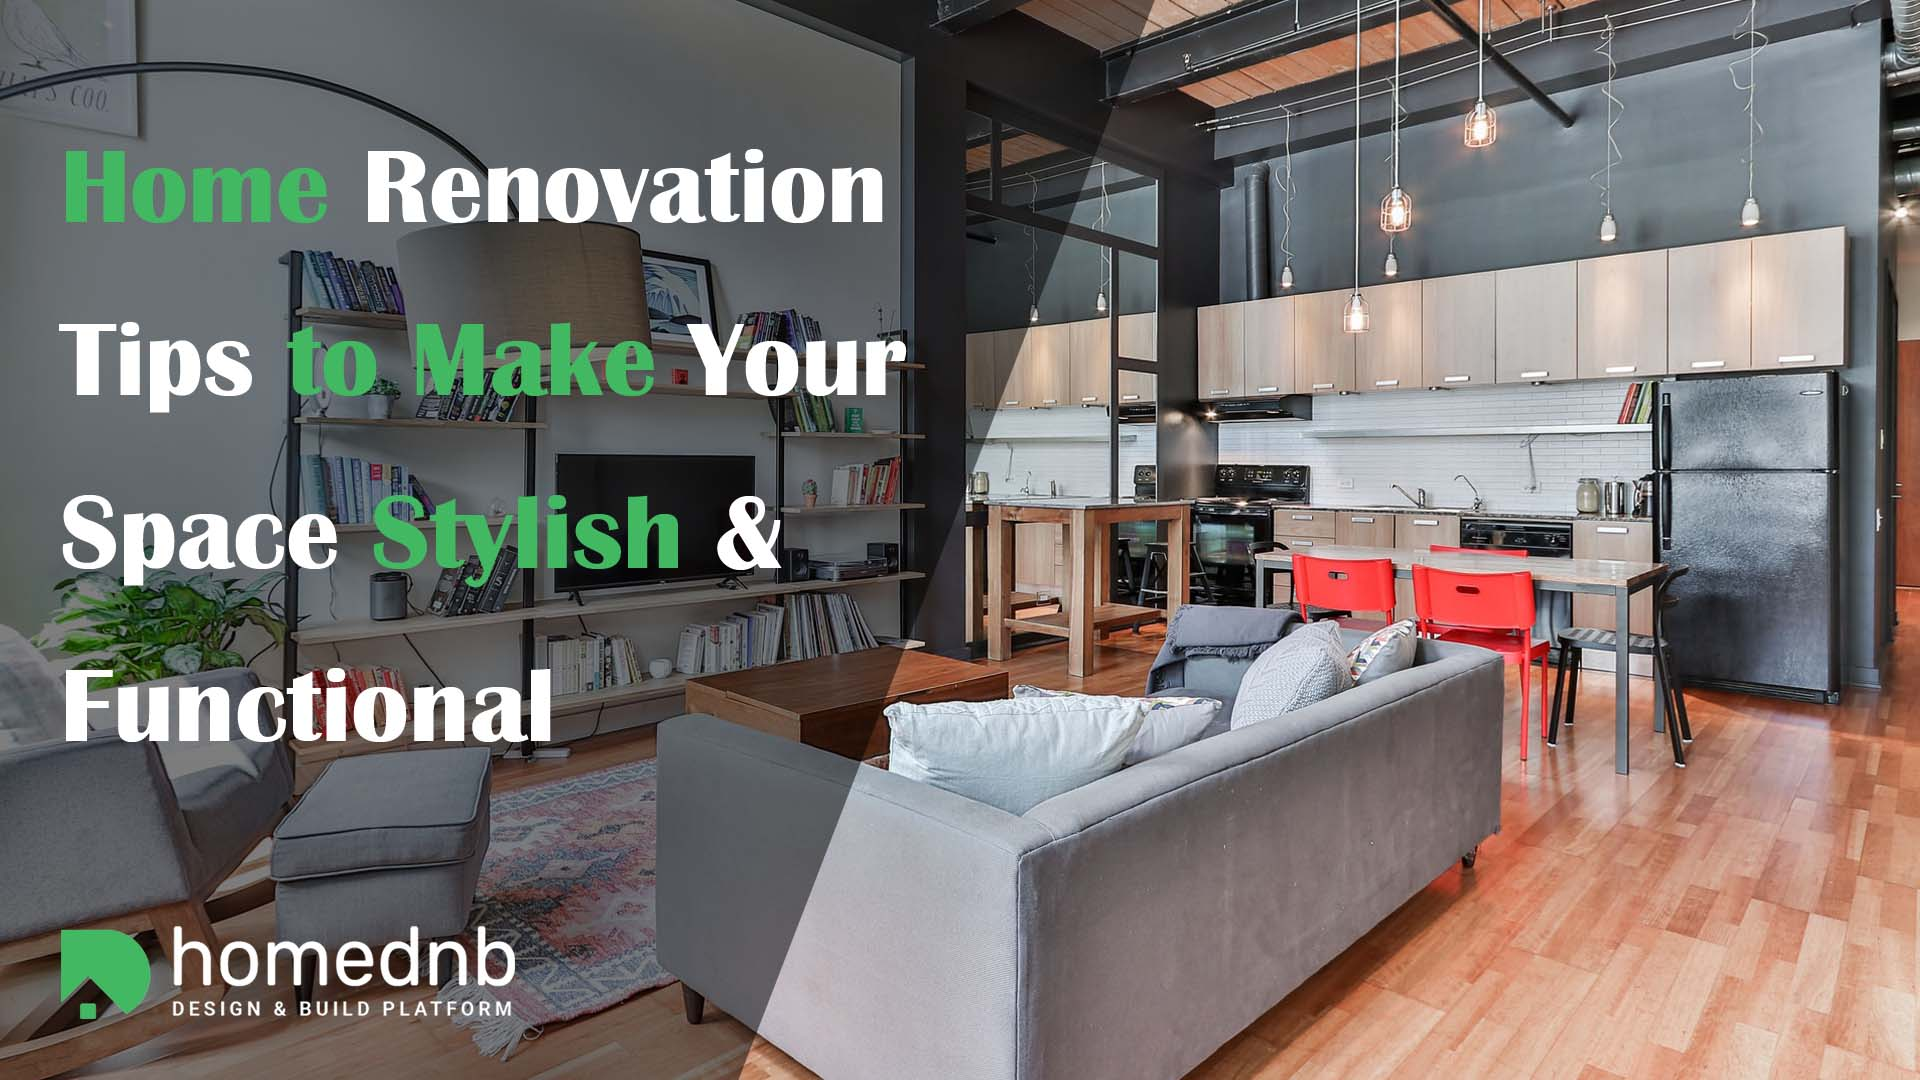 Home Renovation Tips to Make Your Space Stylish & Functional